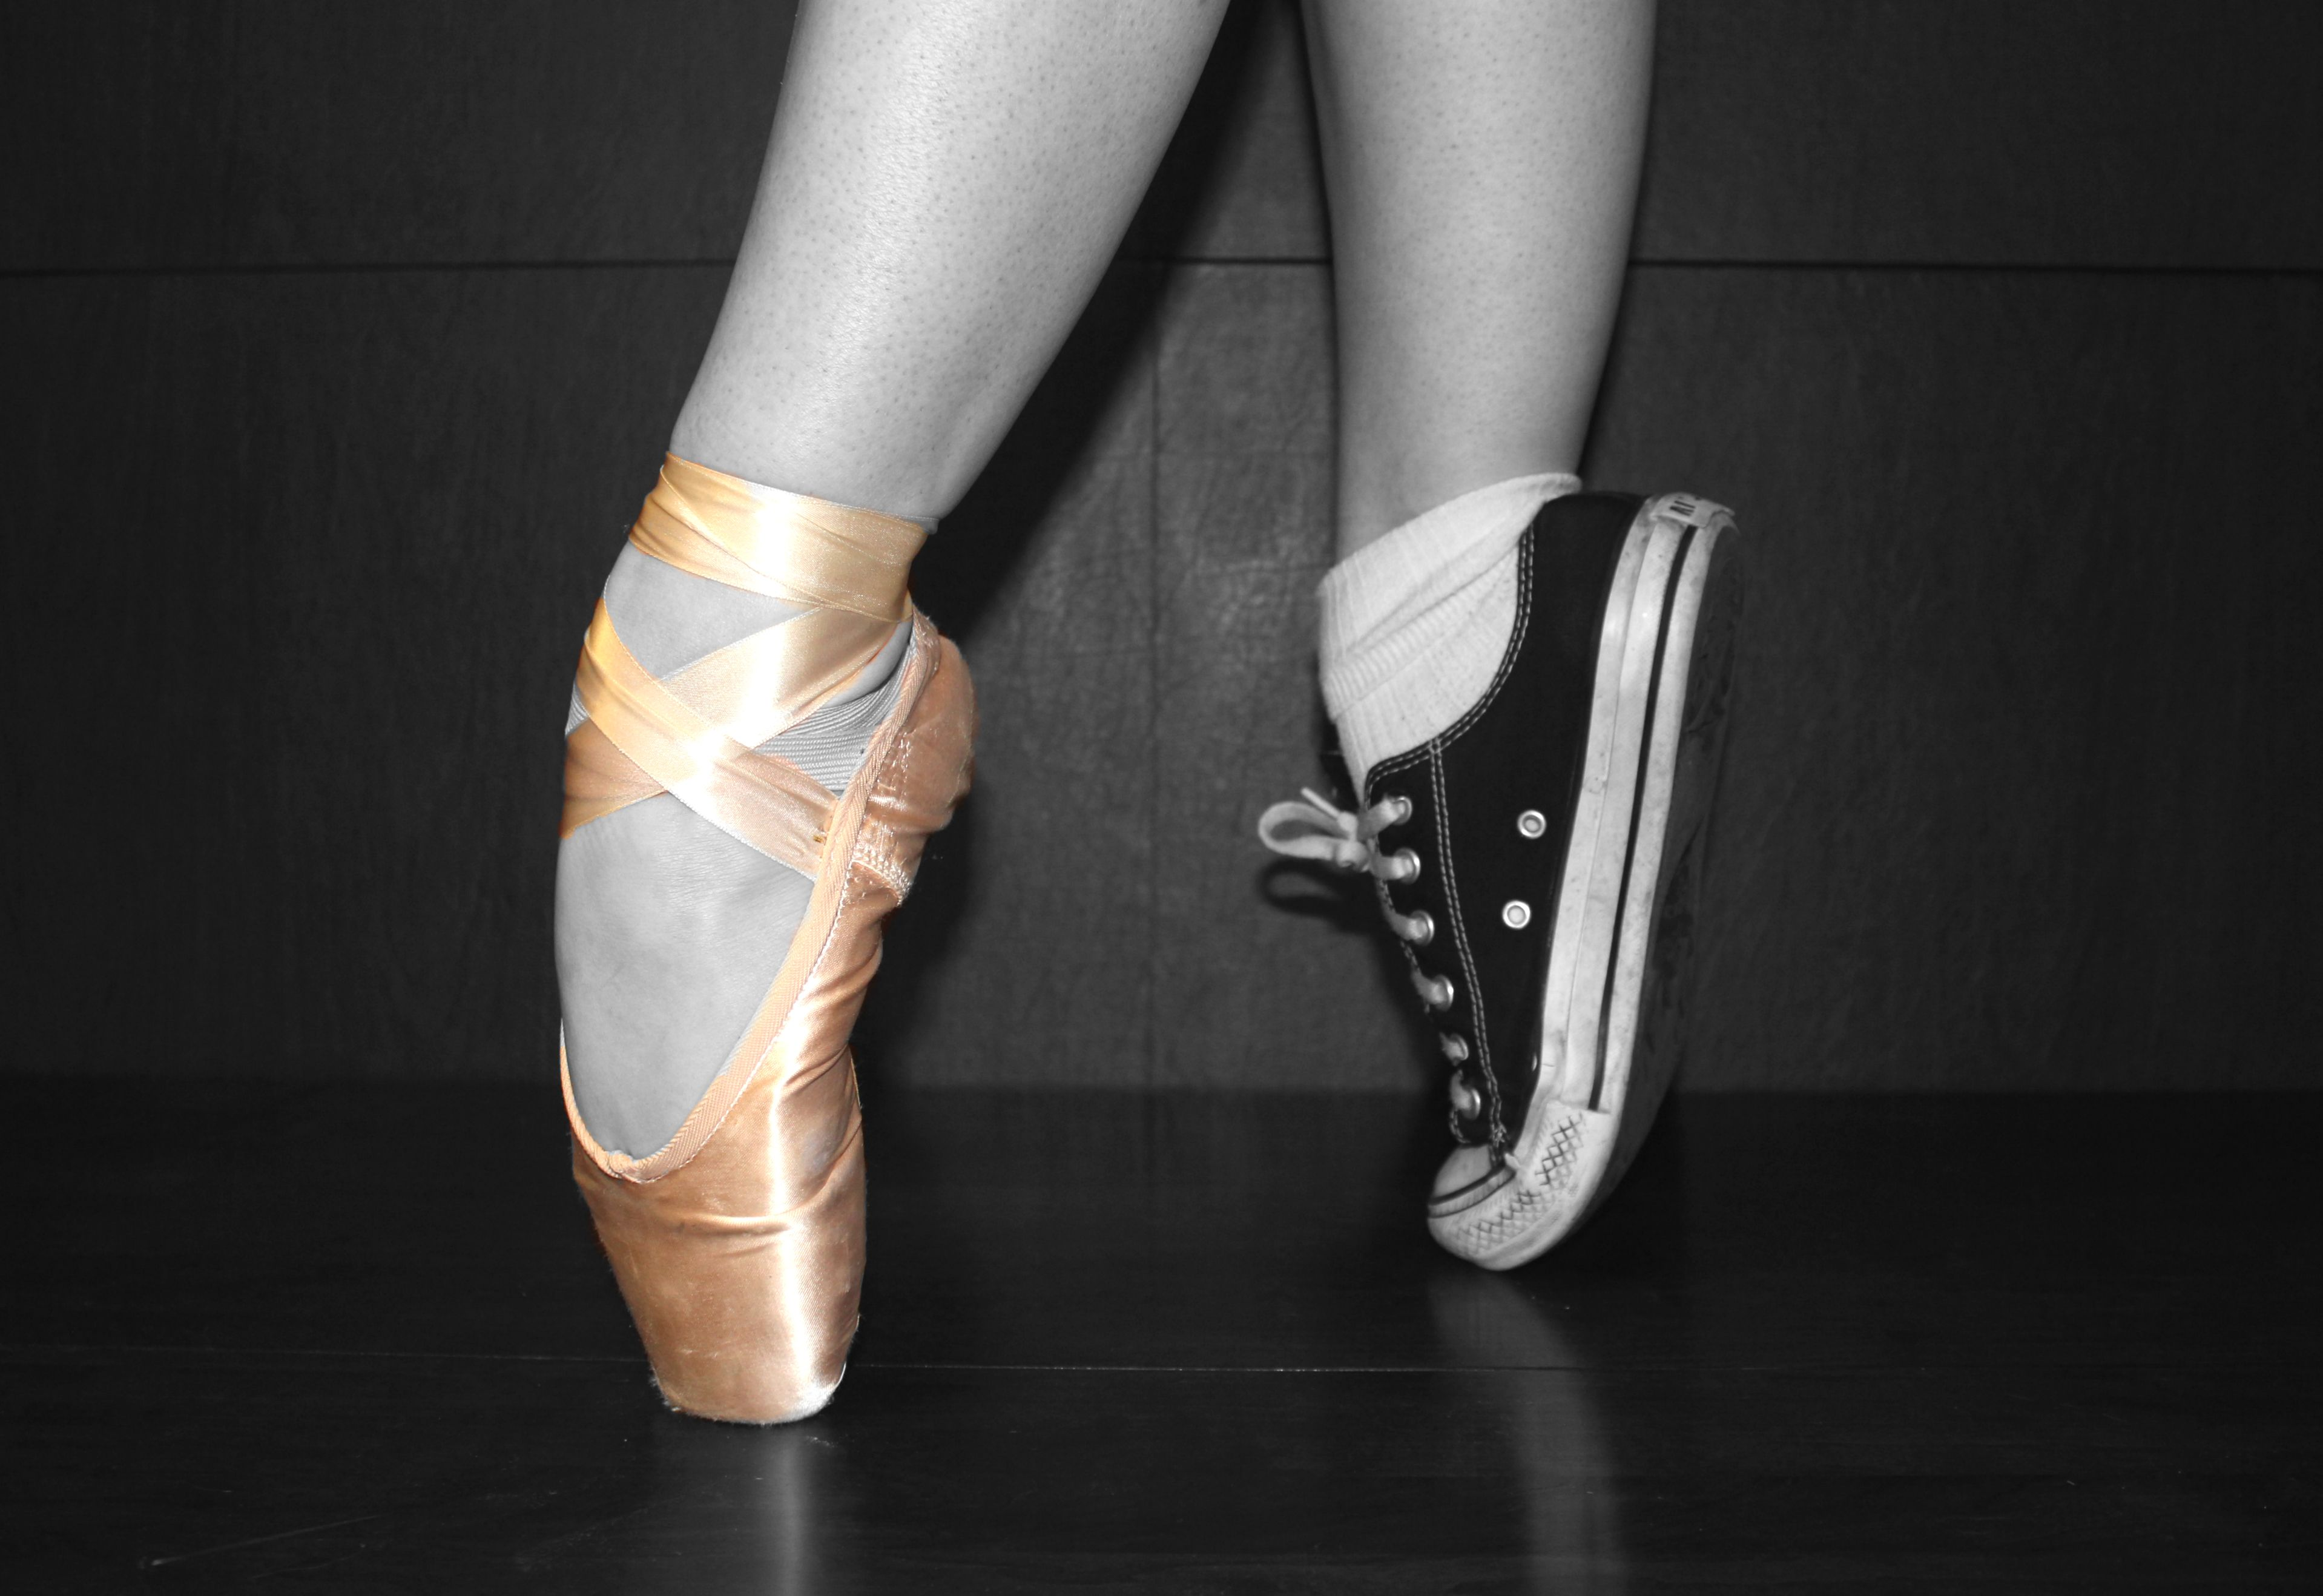 aab1e1032297 pointe shoes vs converse...totally pointe shoes!